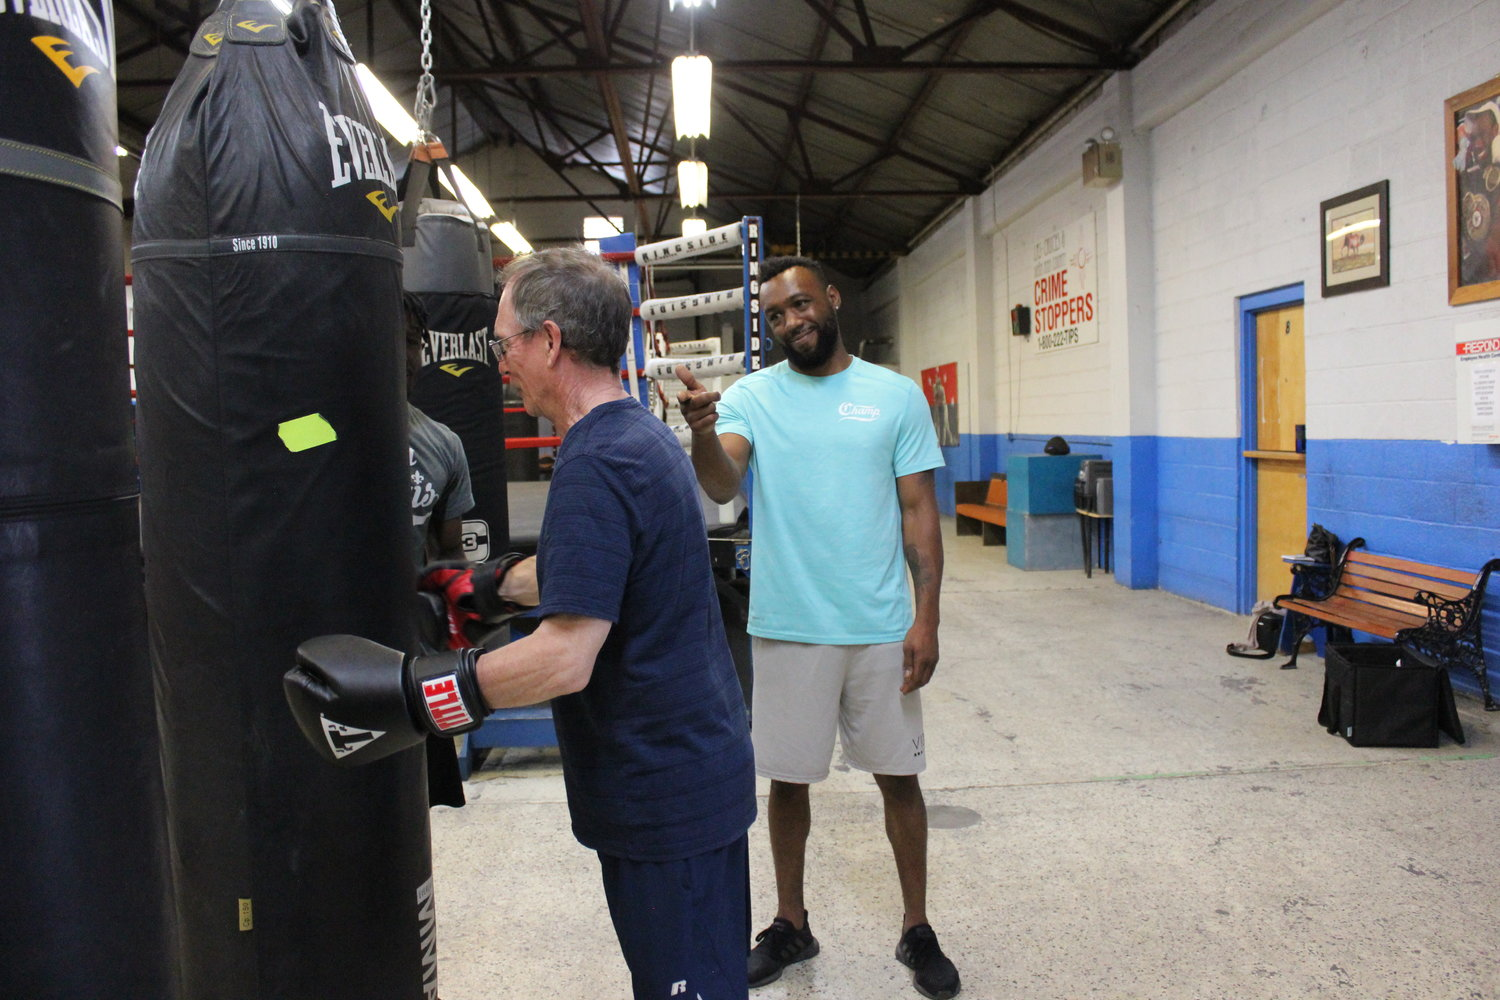 Austin Trout helps guide and encourage Jon Roberts, left, as he hits the bag in a Rock Steady Boxing class held at Las Cruces PAL Boxing, 700 N. Solano Drive.